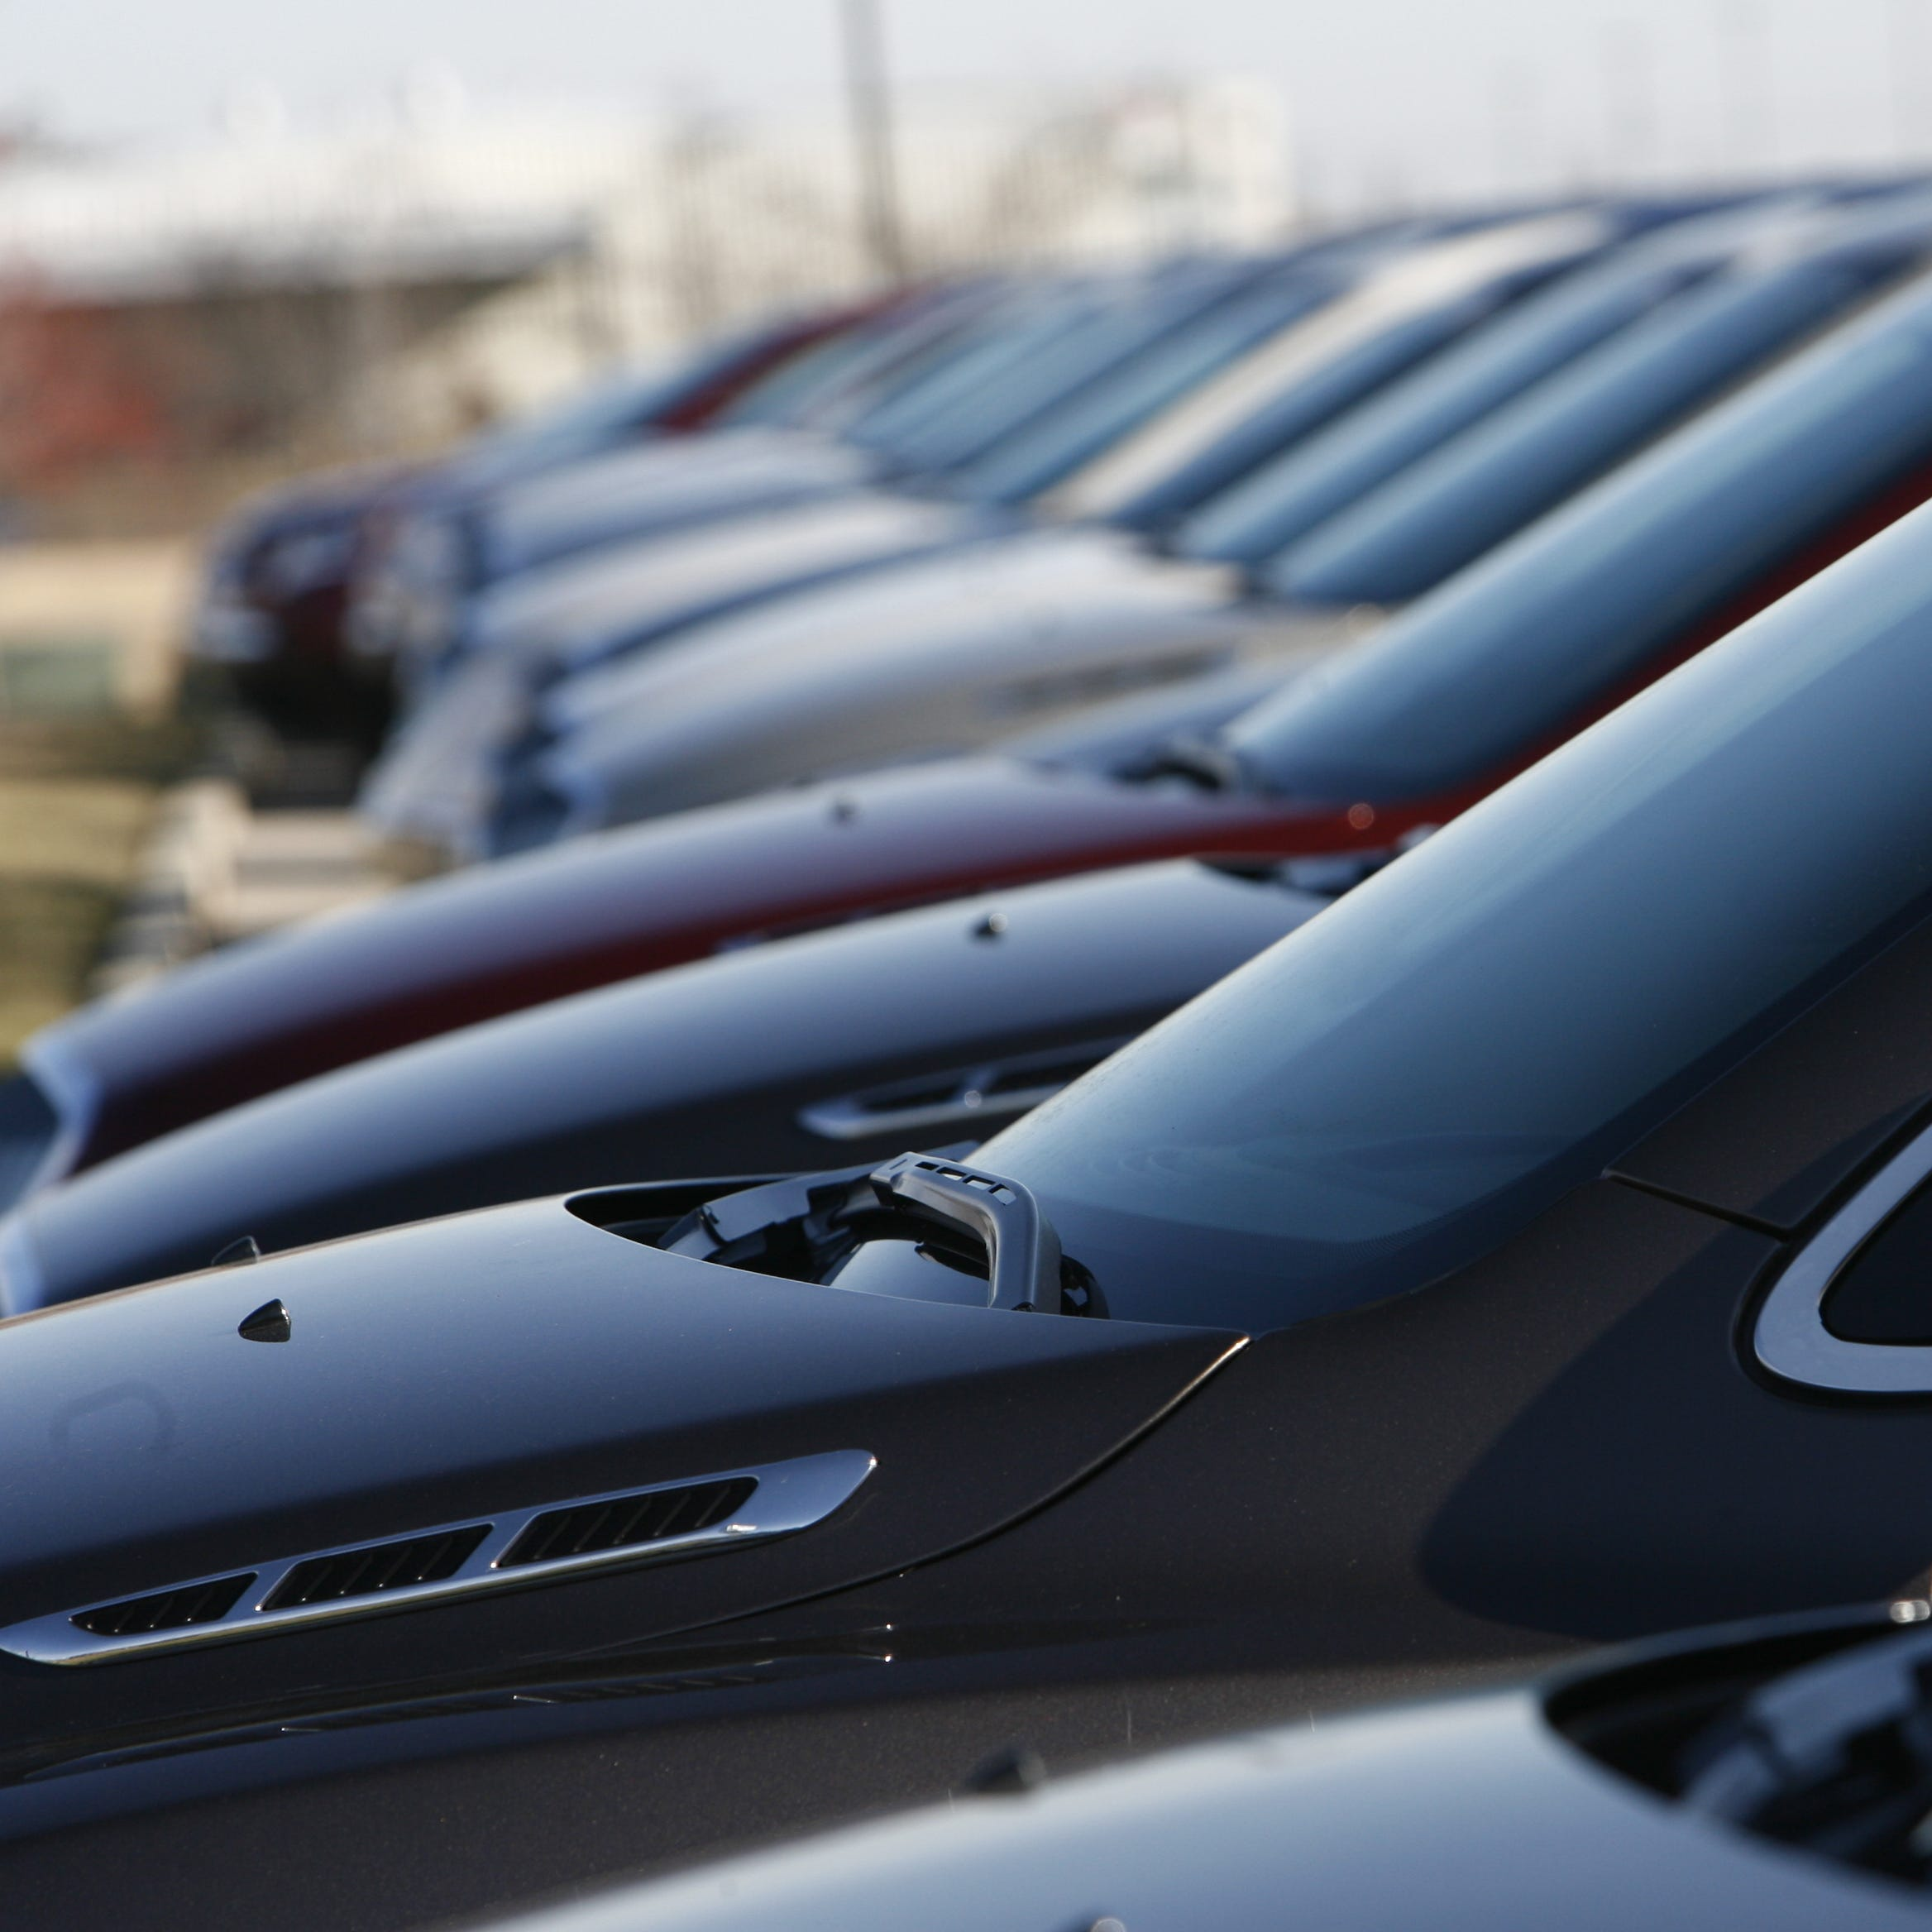 2 Indianapolis car dealers defrauded hundreds of customers, lawsuit says